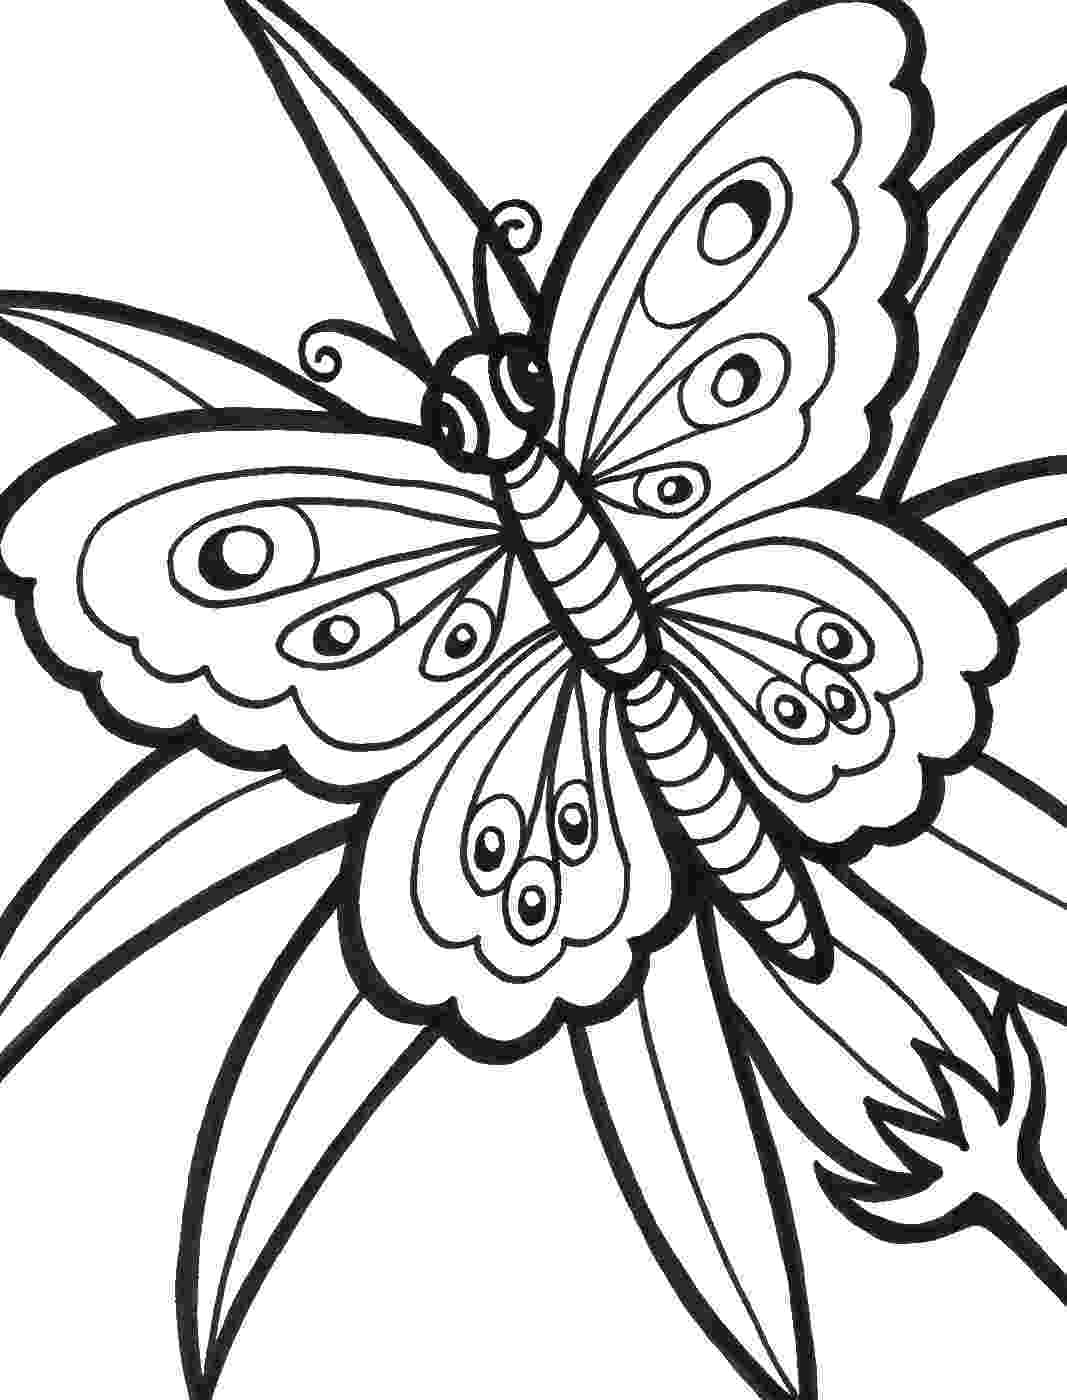 printable coloring pages of flowers and butterflies butterfly coloring pages flowers coloring and printable of pages butterflies